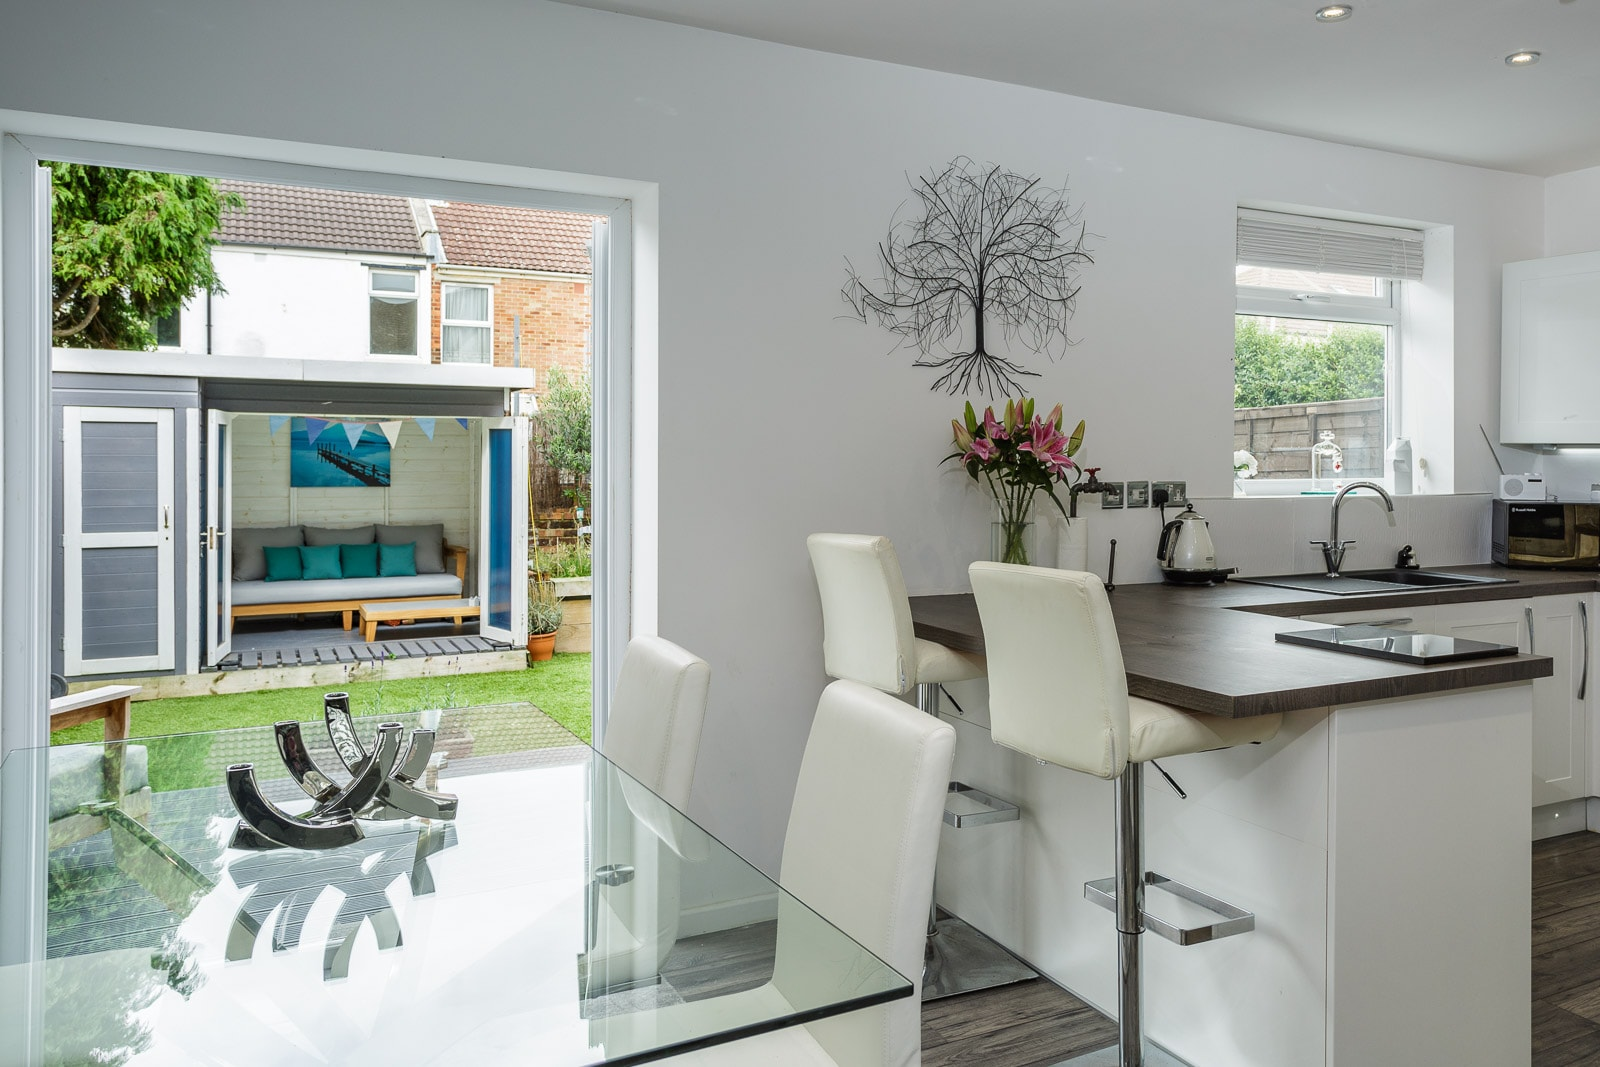 Contemporary glass and stainless steel kitchen with view from patio doors out to garden log cabin